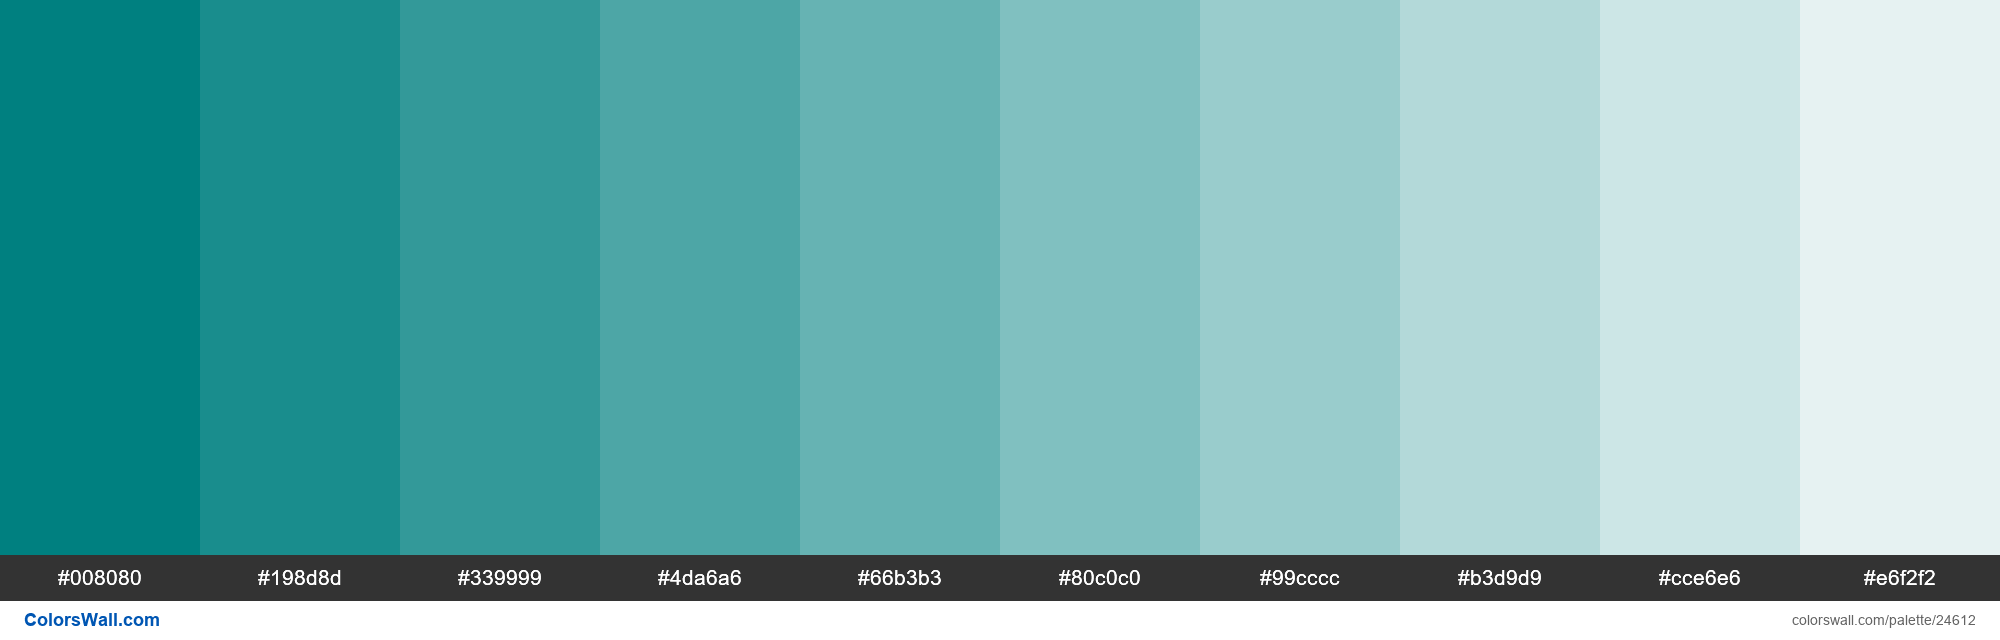 Tints of Teal #008080 hex color - #24612